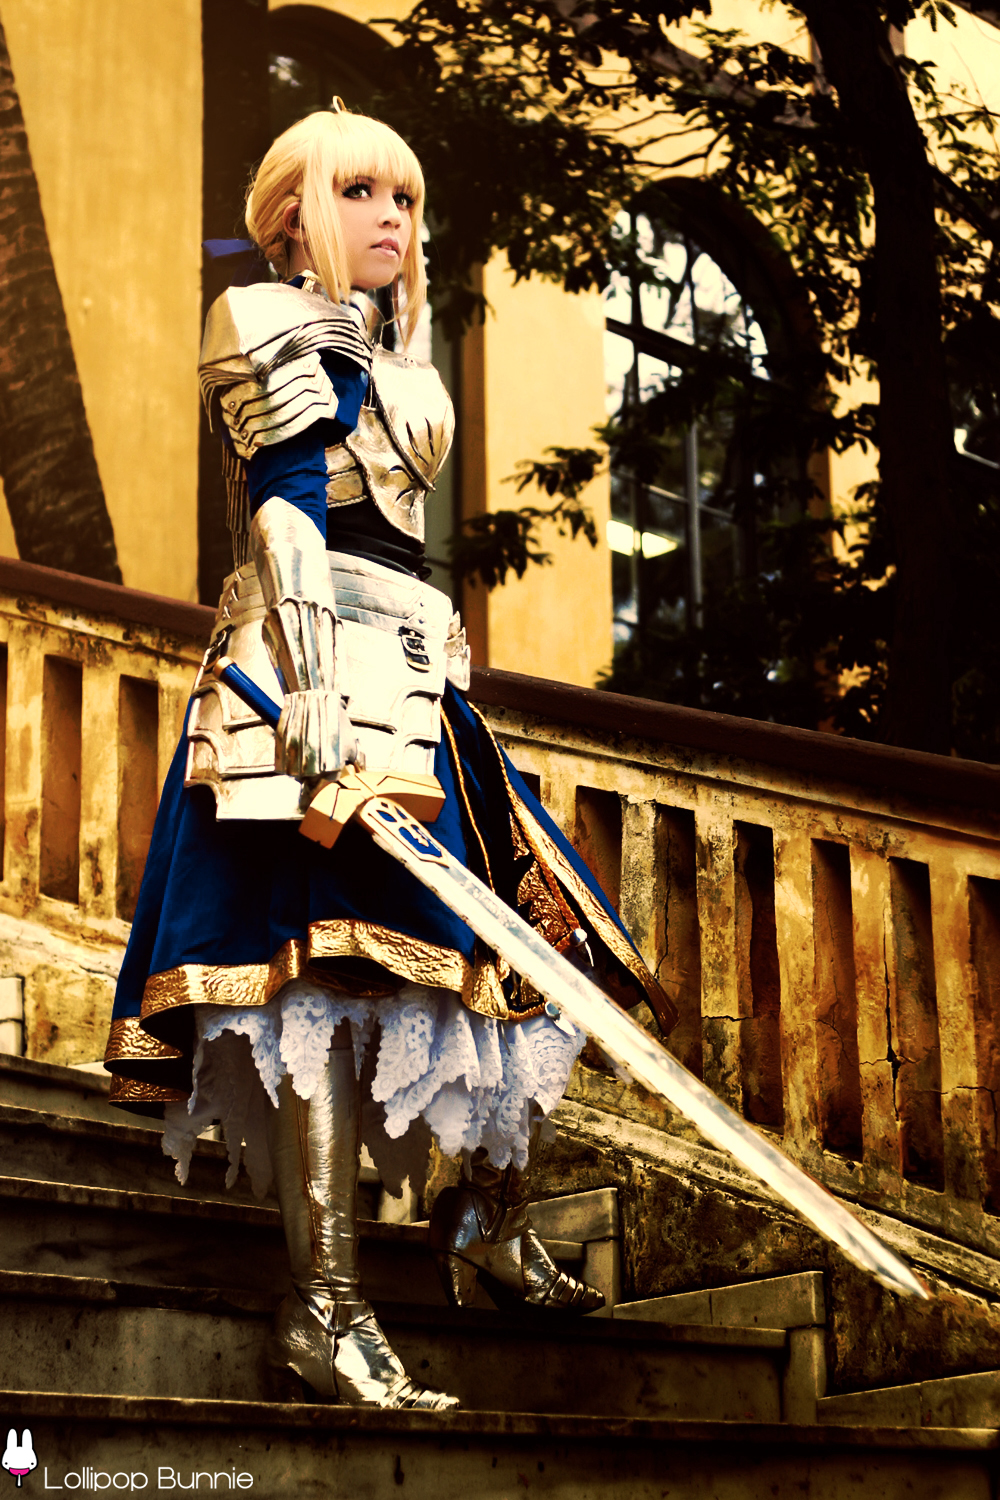 Saber from Fate Stay Night by JuTsukinoOfficial